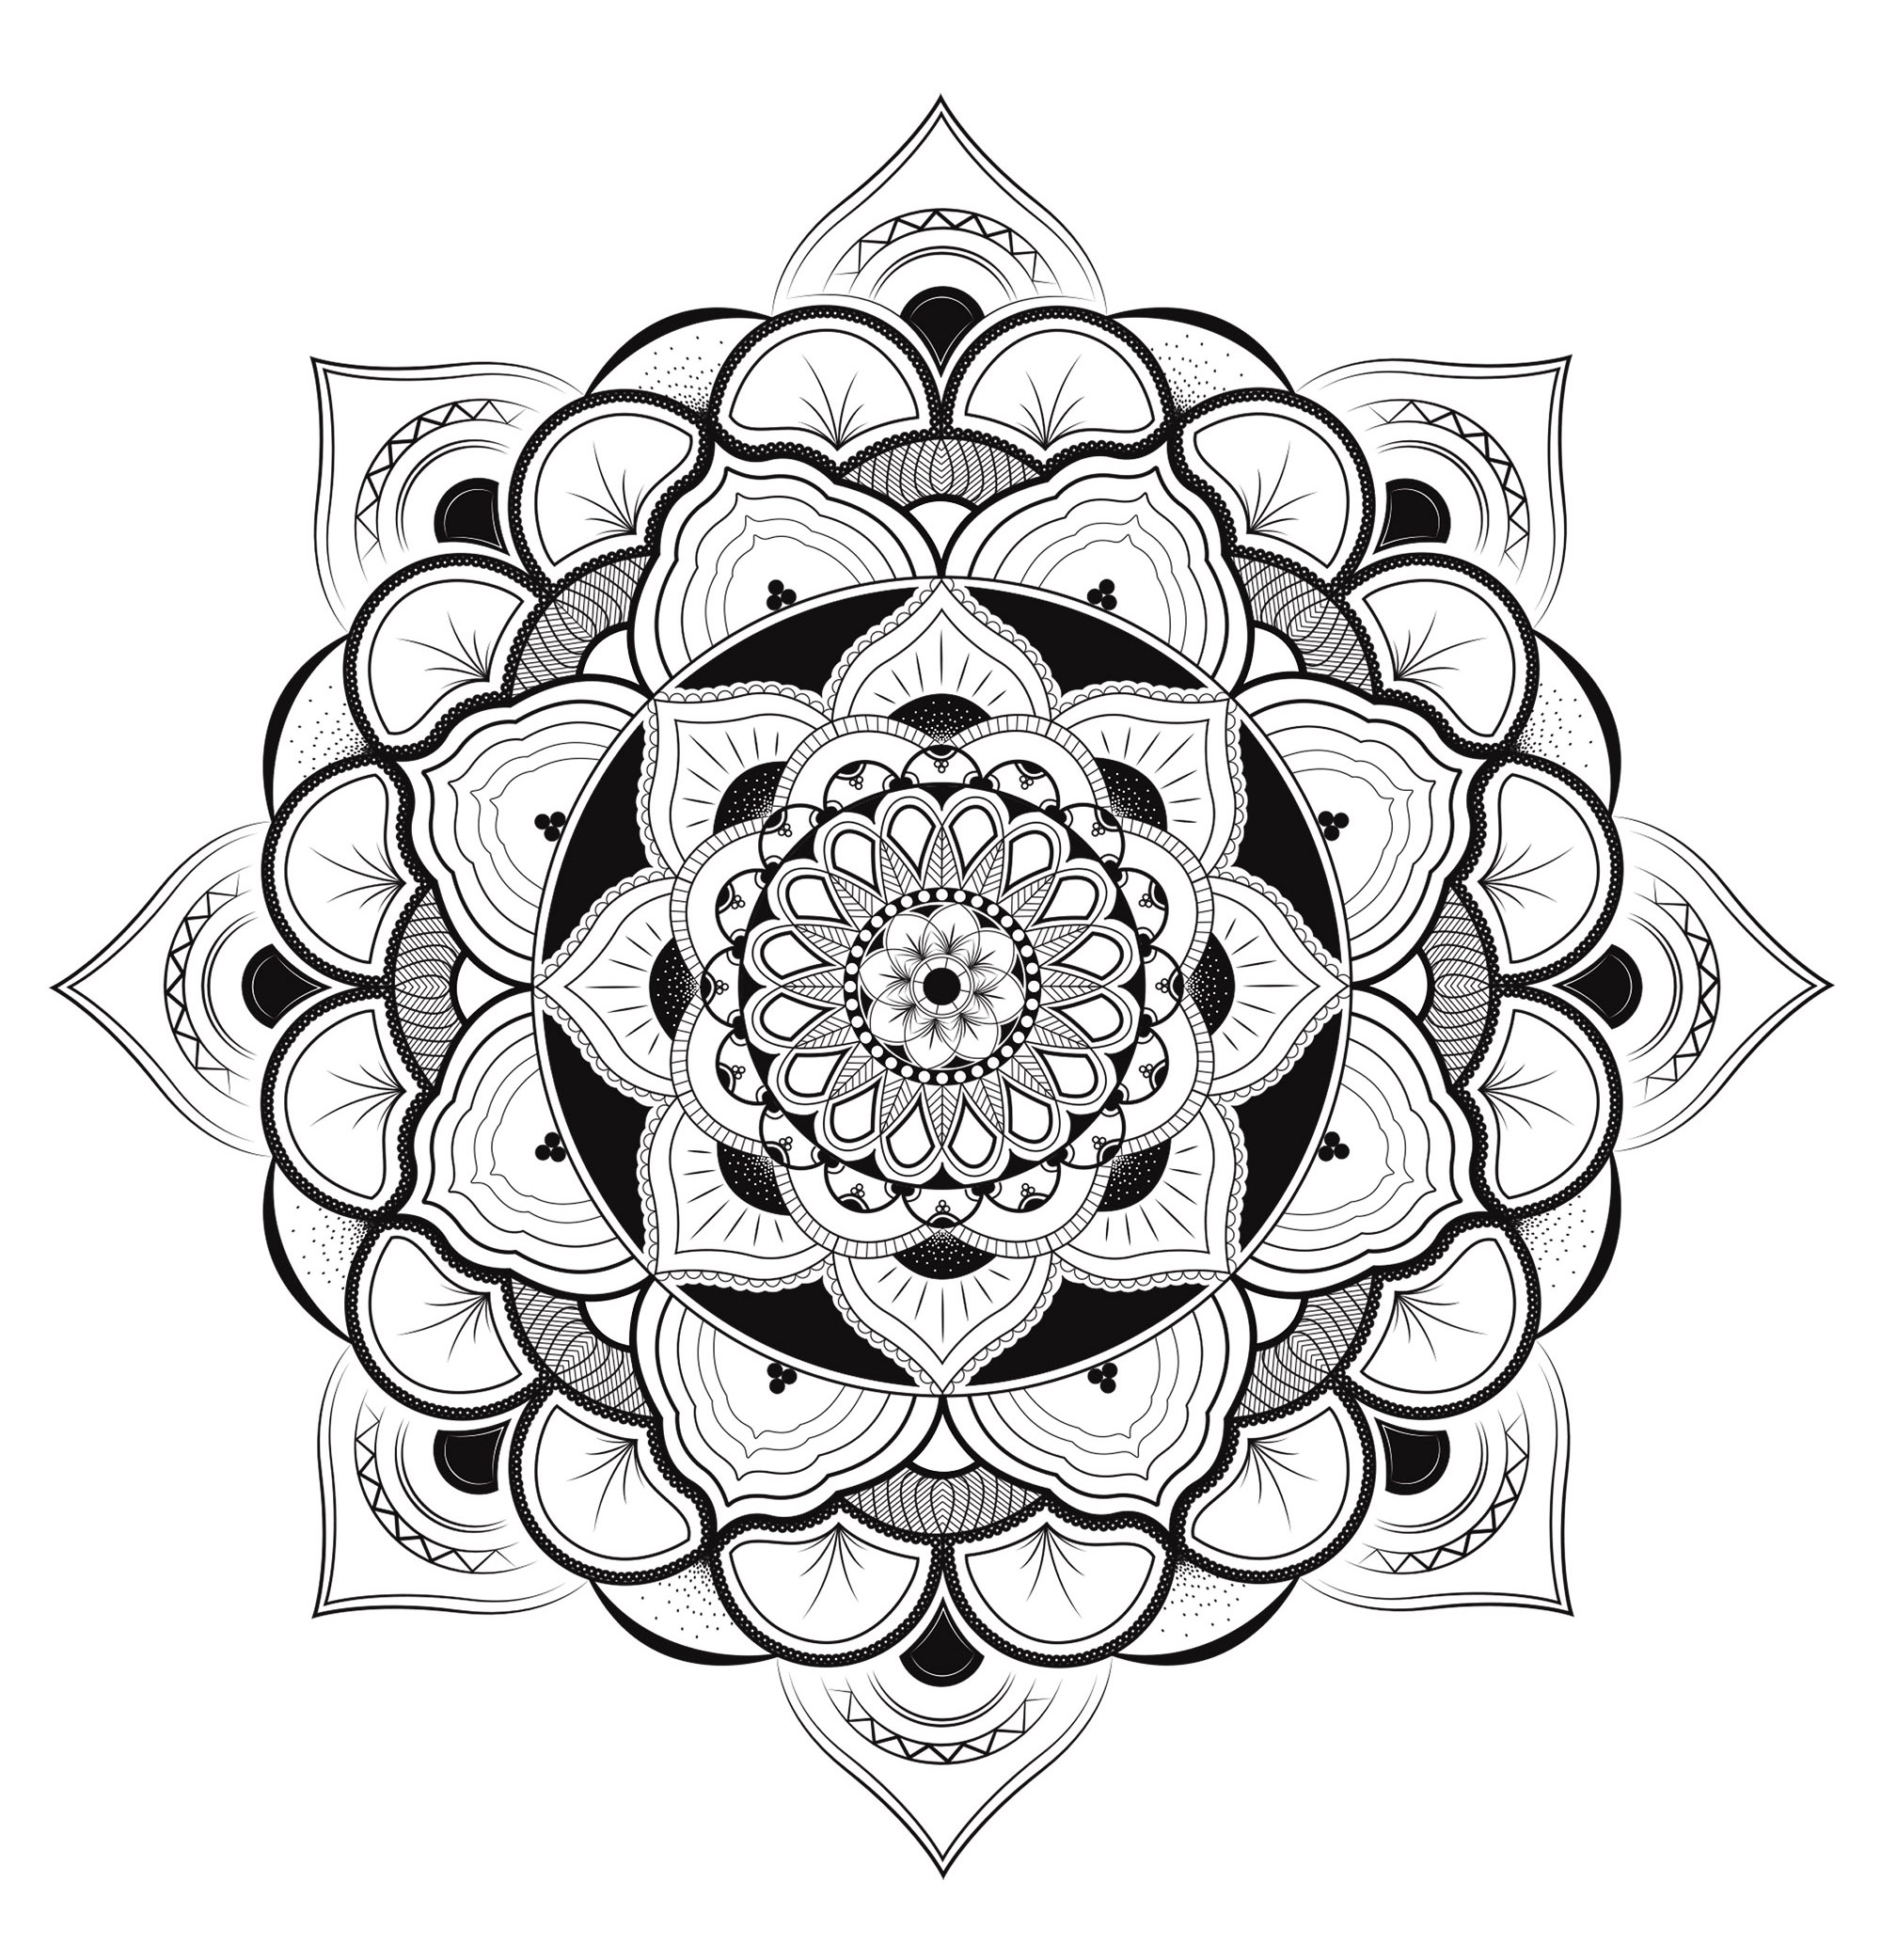 Mandala coloring page very complex, full of details, inspired by Hinduism. Unique Zen & Anti-stress Mandala. Designing and coloring mandalas give you a feeling of calmness.